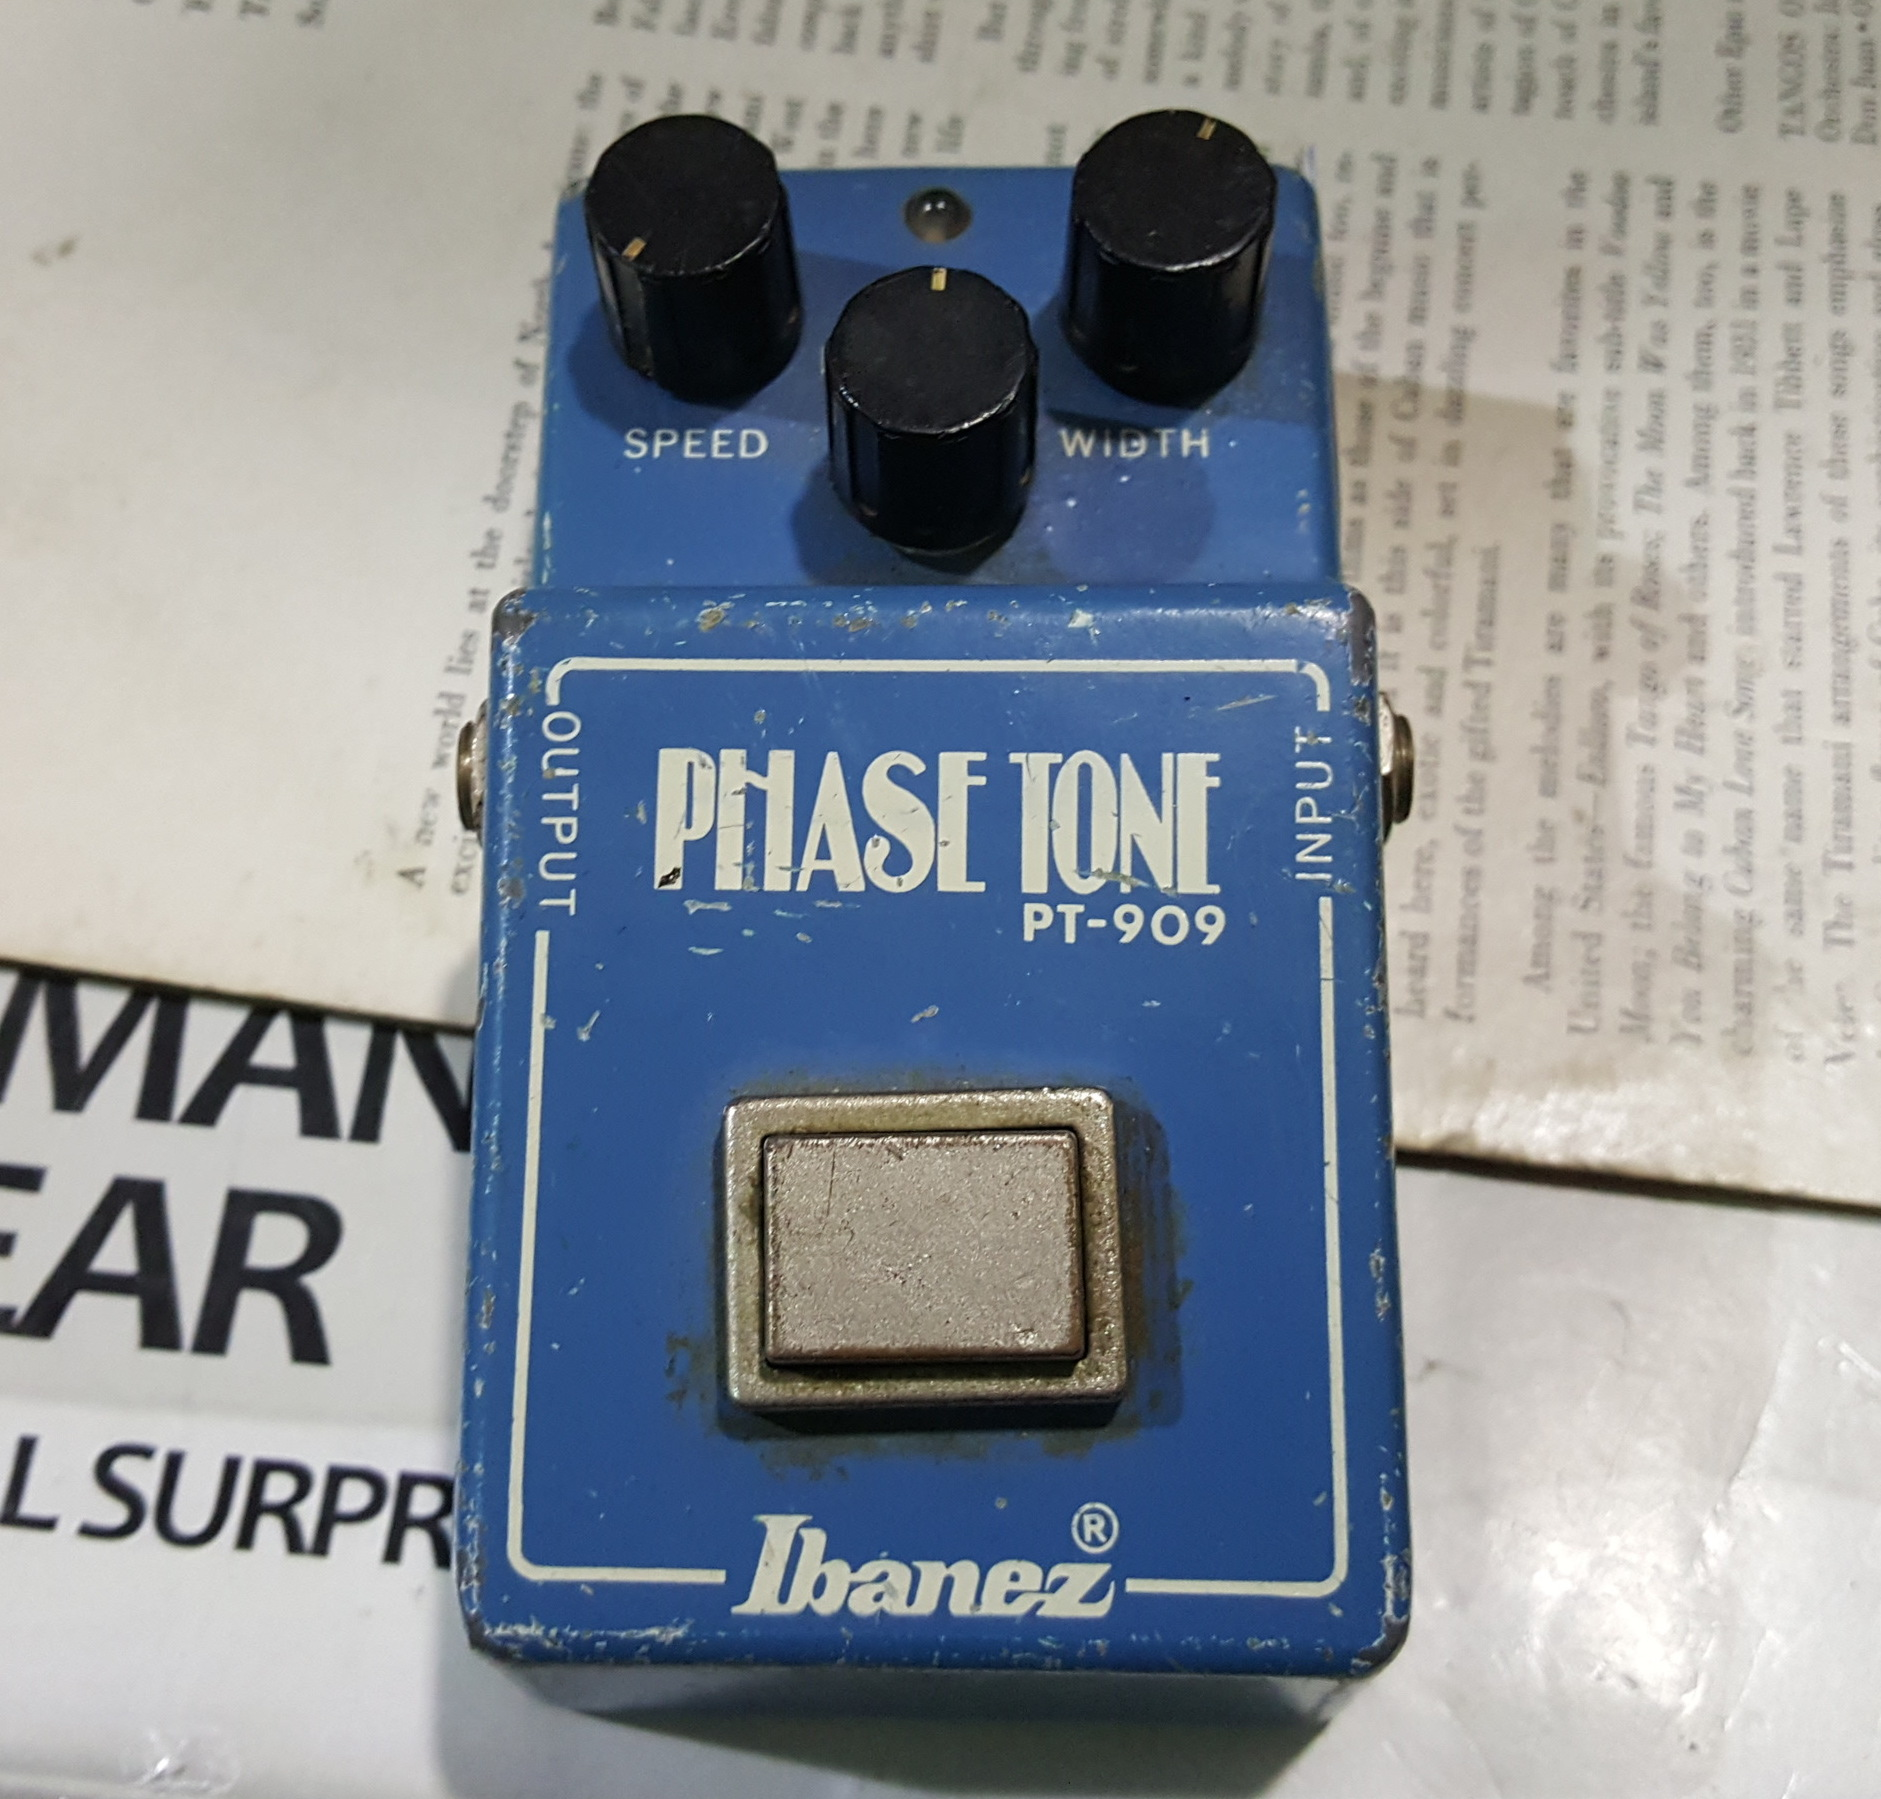 VINTAGE IBANEZ PHASE TONE PT-909 Phaser Guitar Effects Fx Pedal